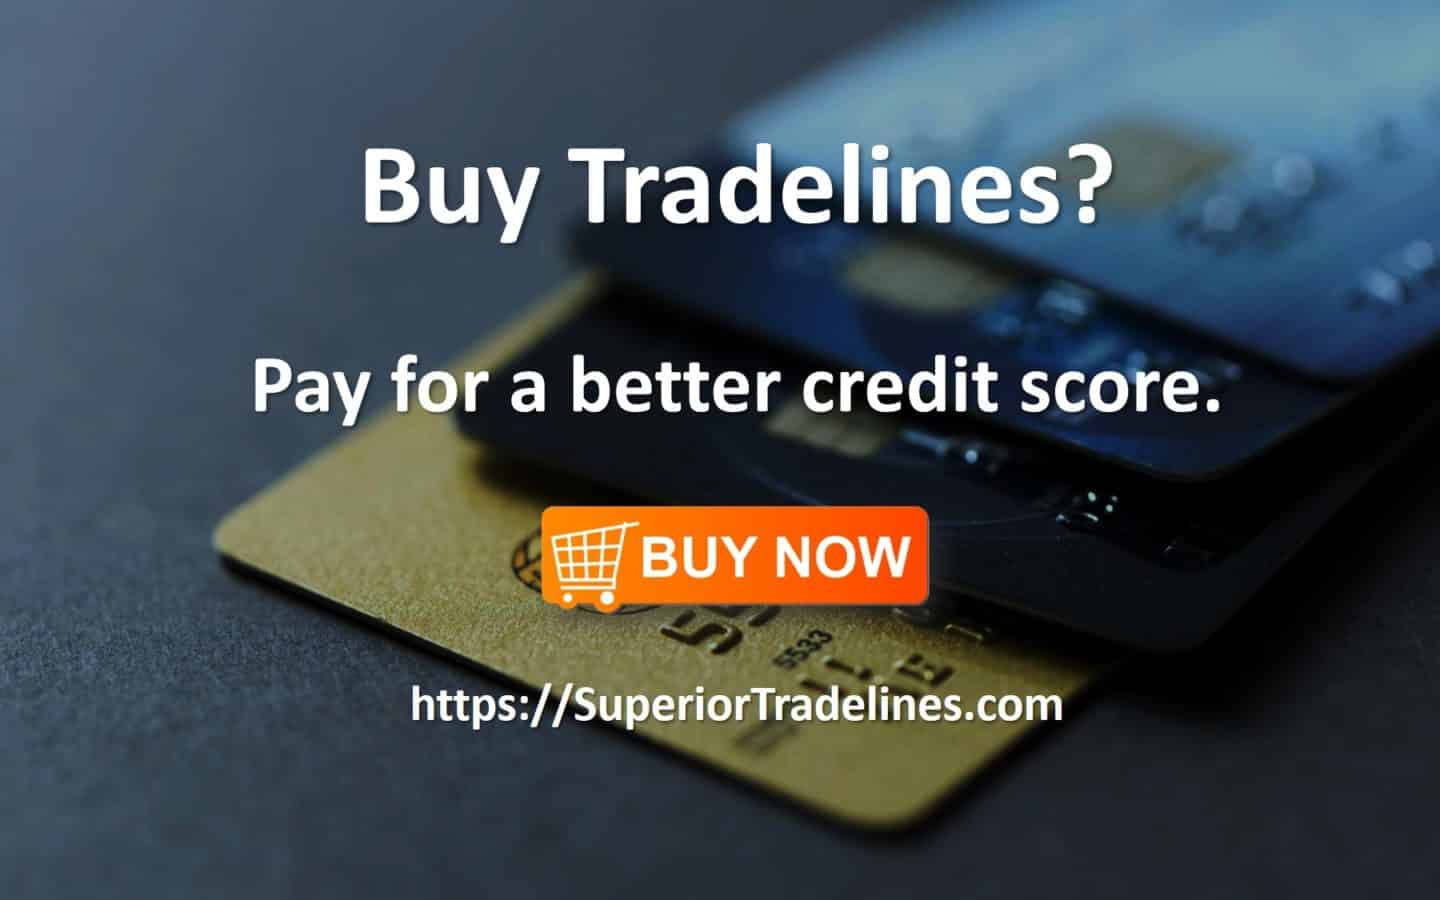 how to buy tradelines